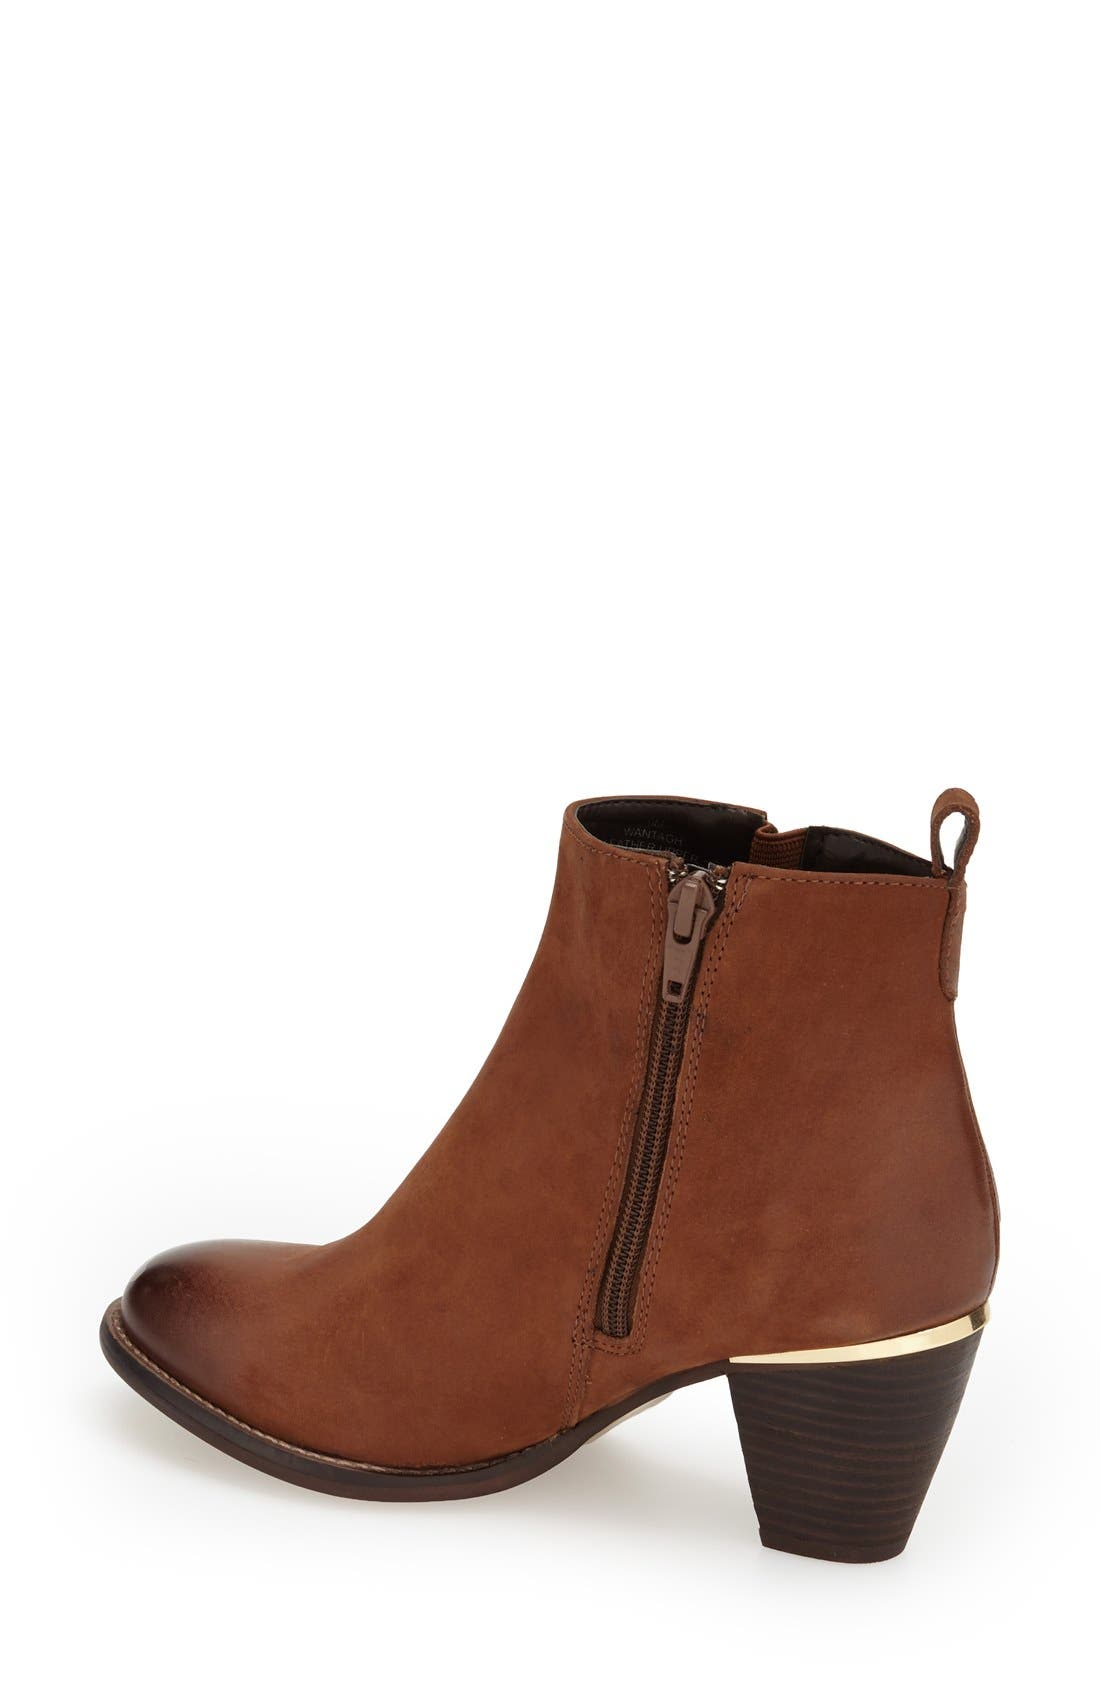 Alternate Image 2  - Steve Madden 'Wantagh' Leather Ankle Boot (Women)